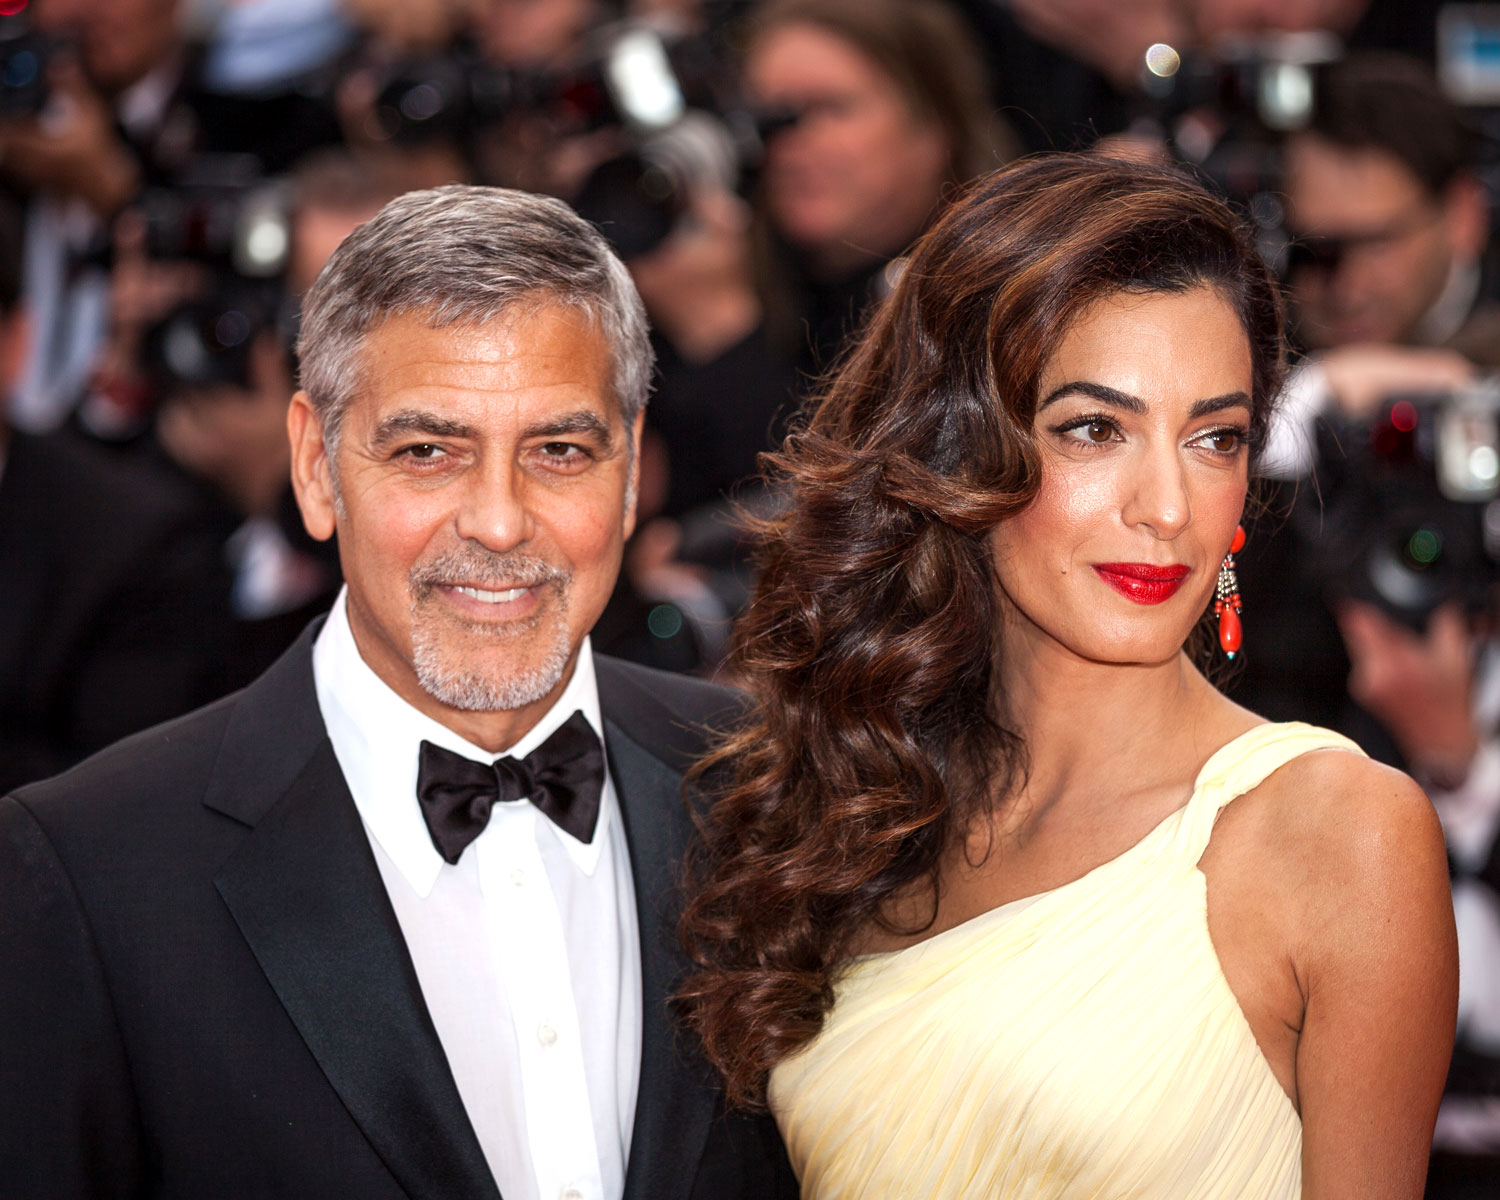 George Clooney Reveals How He Proposed to Amal and Its Adorable pics